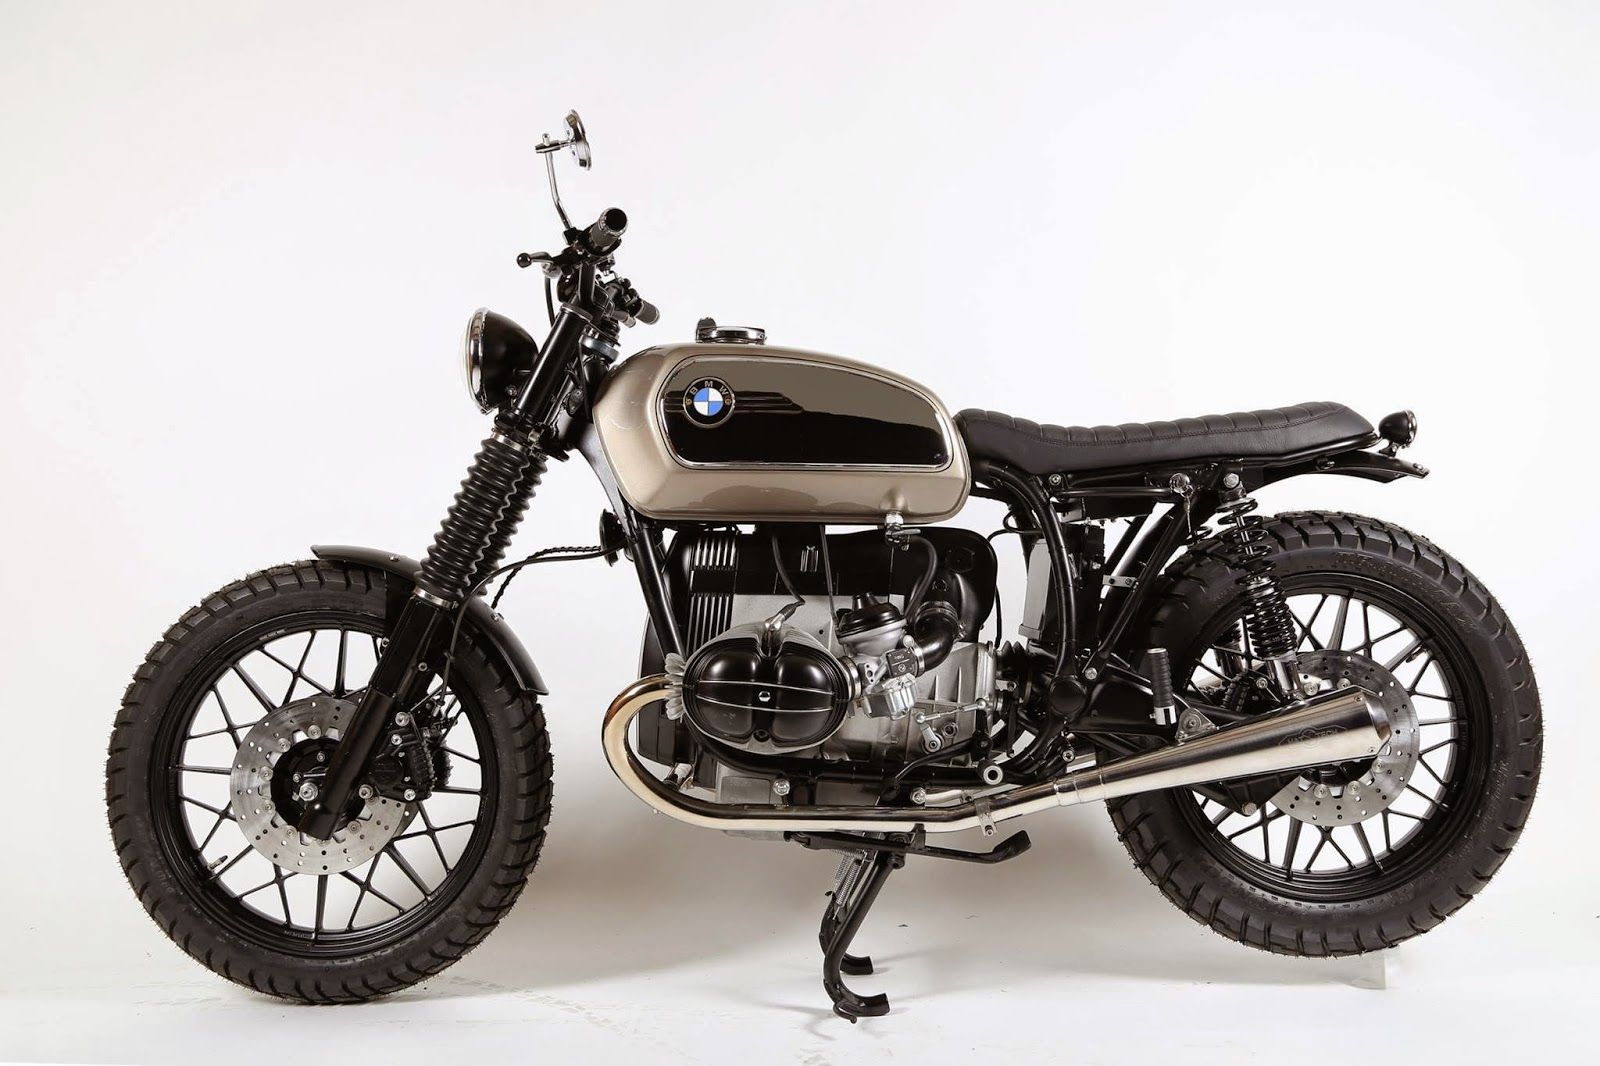 BMW R100rt Nr.17 by HB Custom from Holger Breuer 31632 Husum, Germany